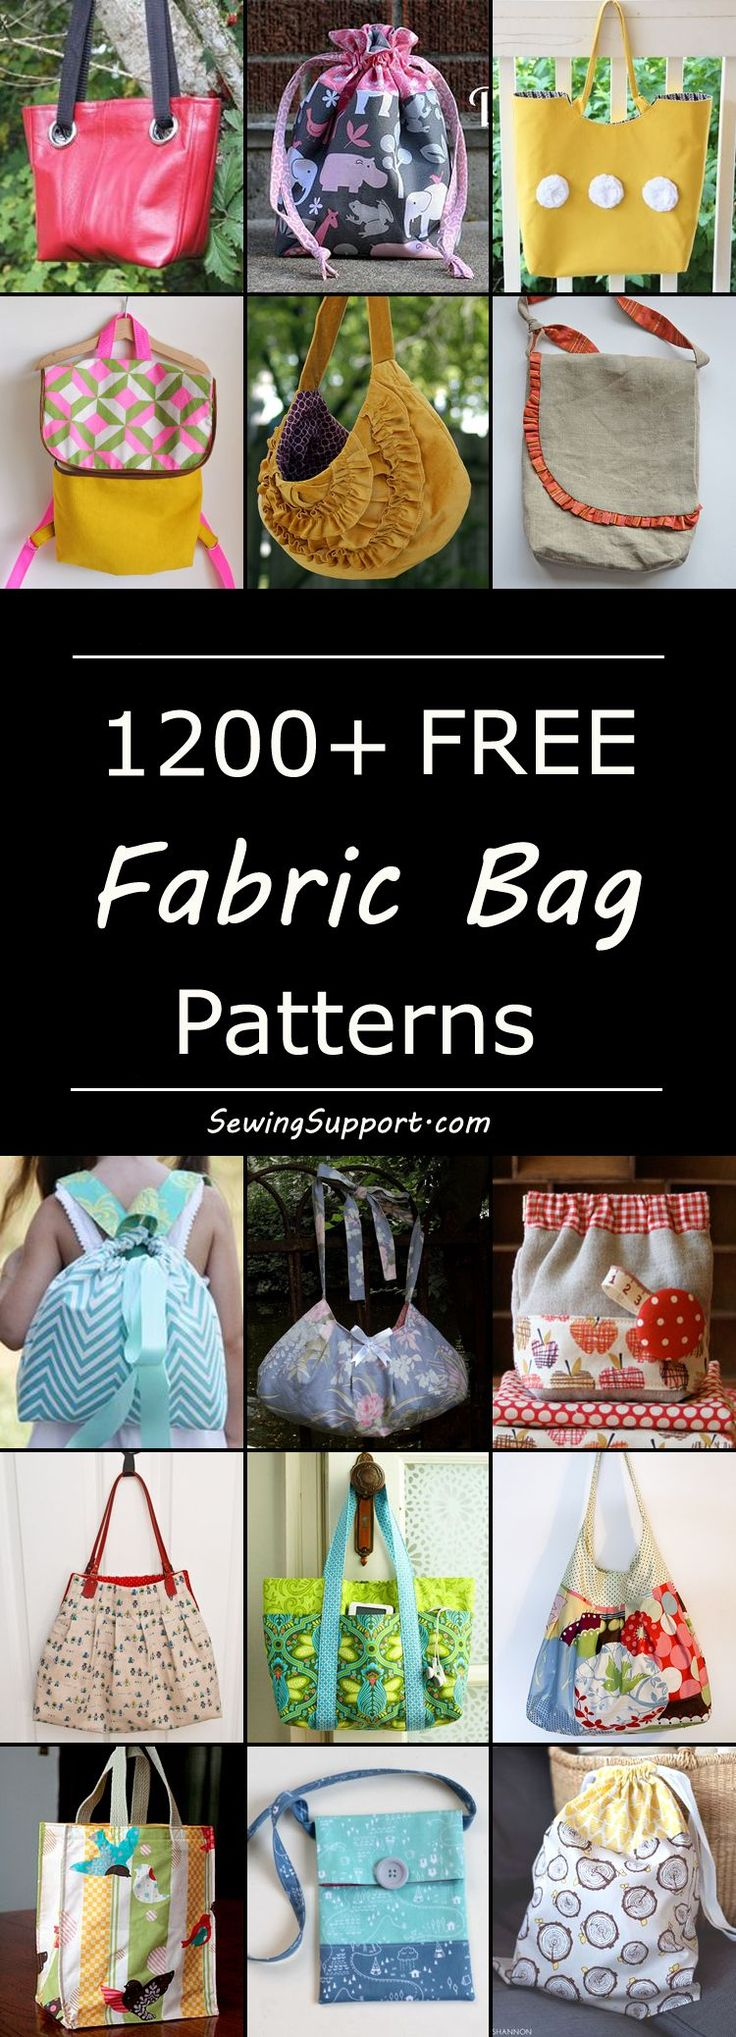 Lots of free bag sewing patterns, diy projects, and tutorials. Sew messenger bags, tote & book bags, hobo, slouch, & sling bags, drawstring, diaper, duffle, lunch, shopping, beach, and travel bags, backpacks, purses & clutch bags, large & small bags. Many simple & easy designs. #diybag